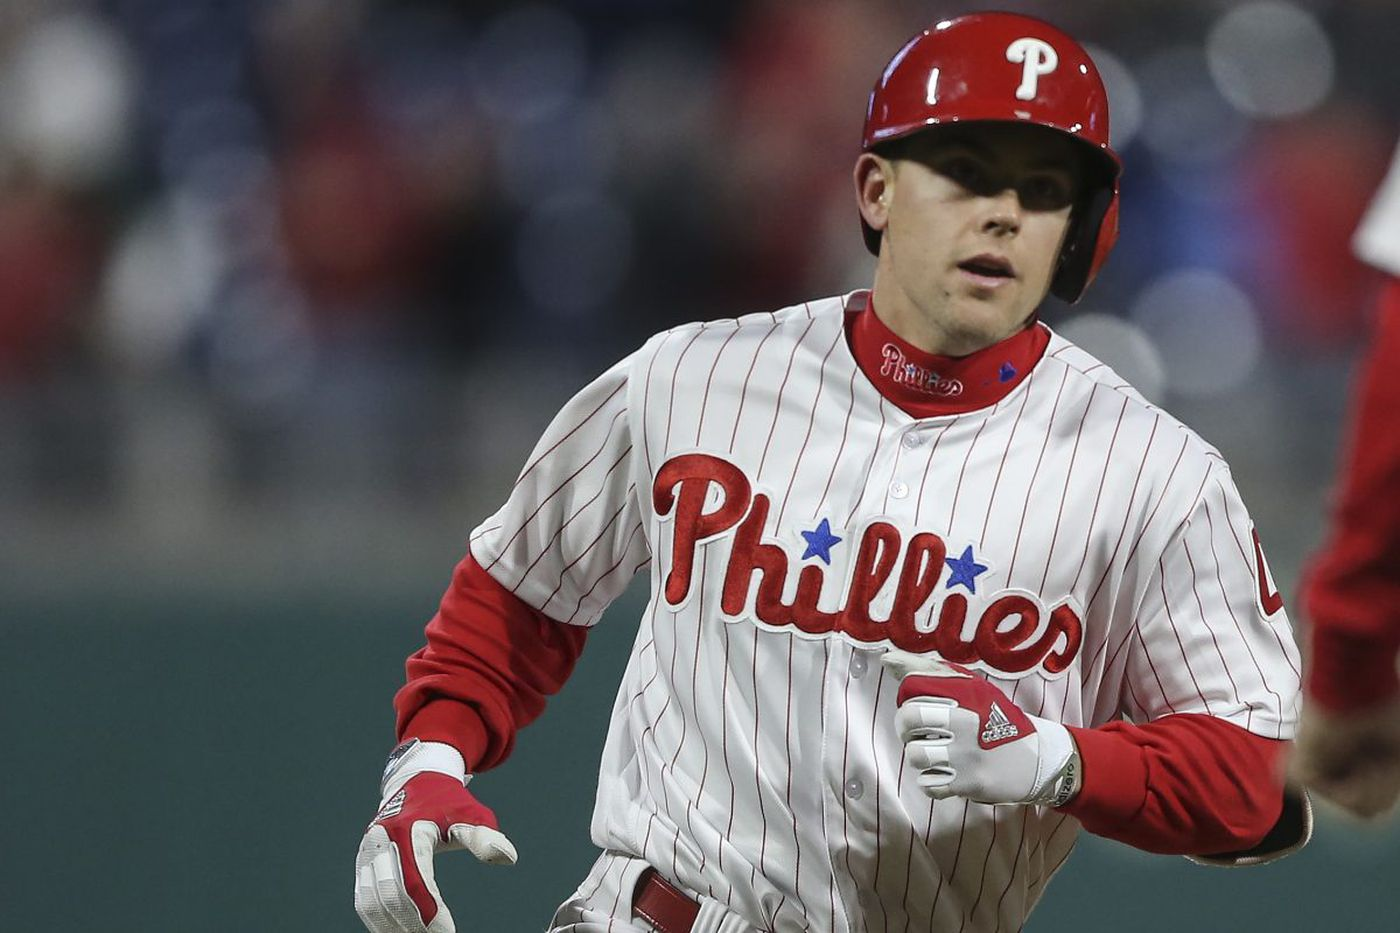 Phillies' Scott Kingery should already be considered top-rookie candidate | Bob Brookover